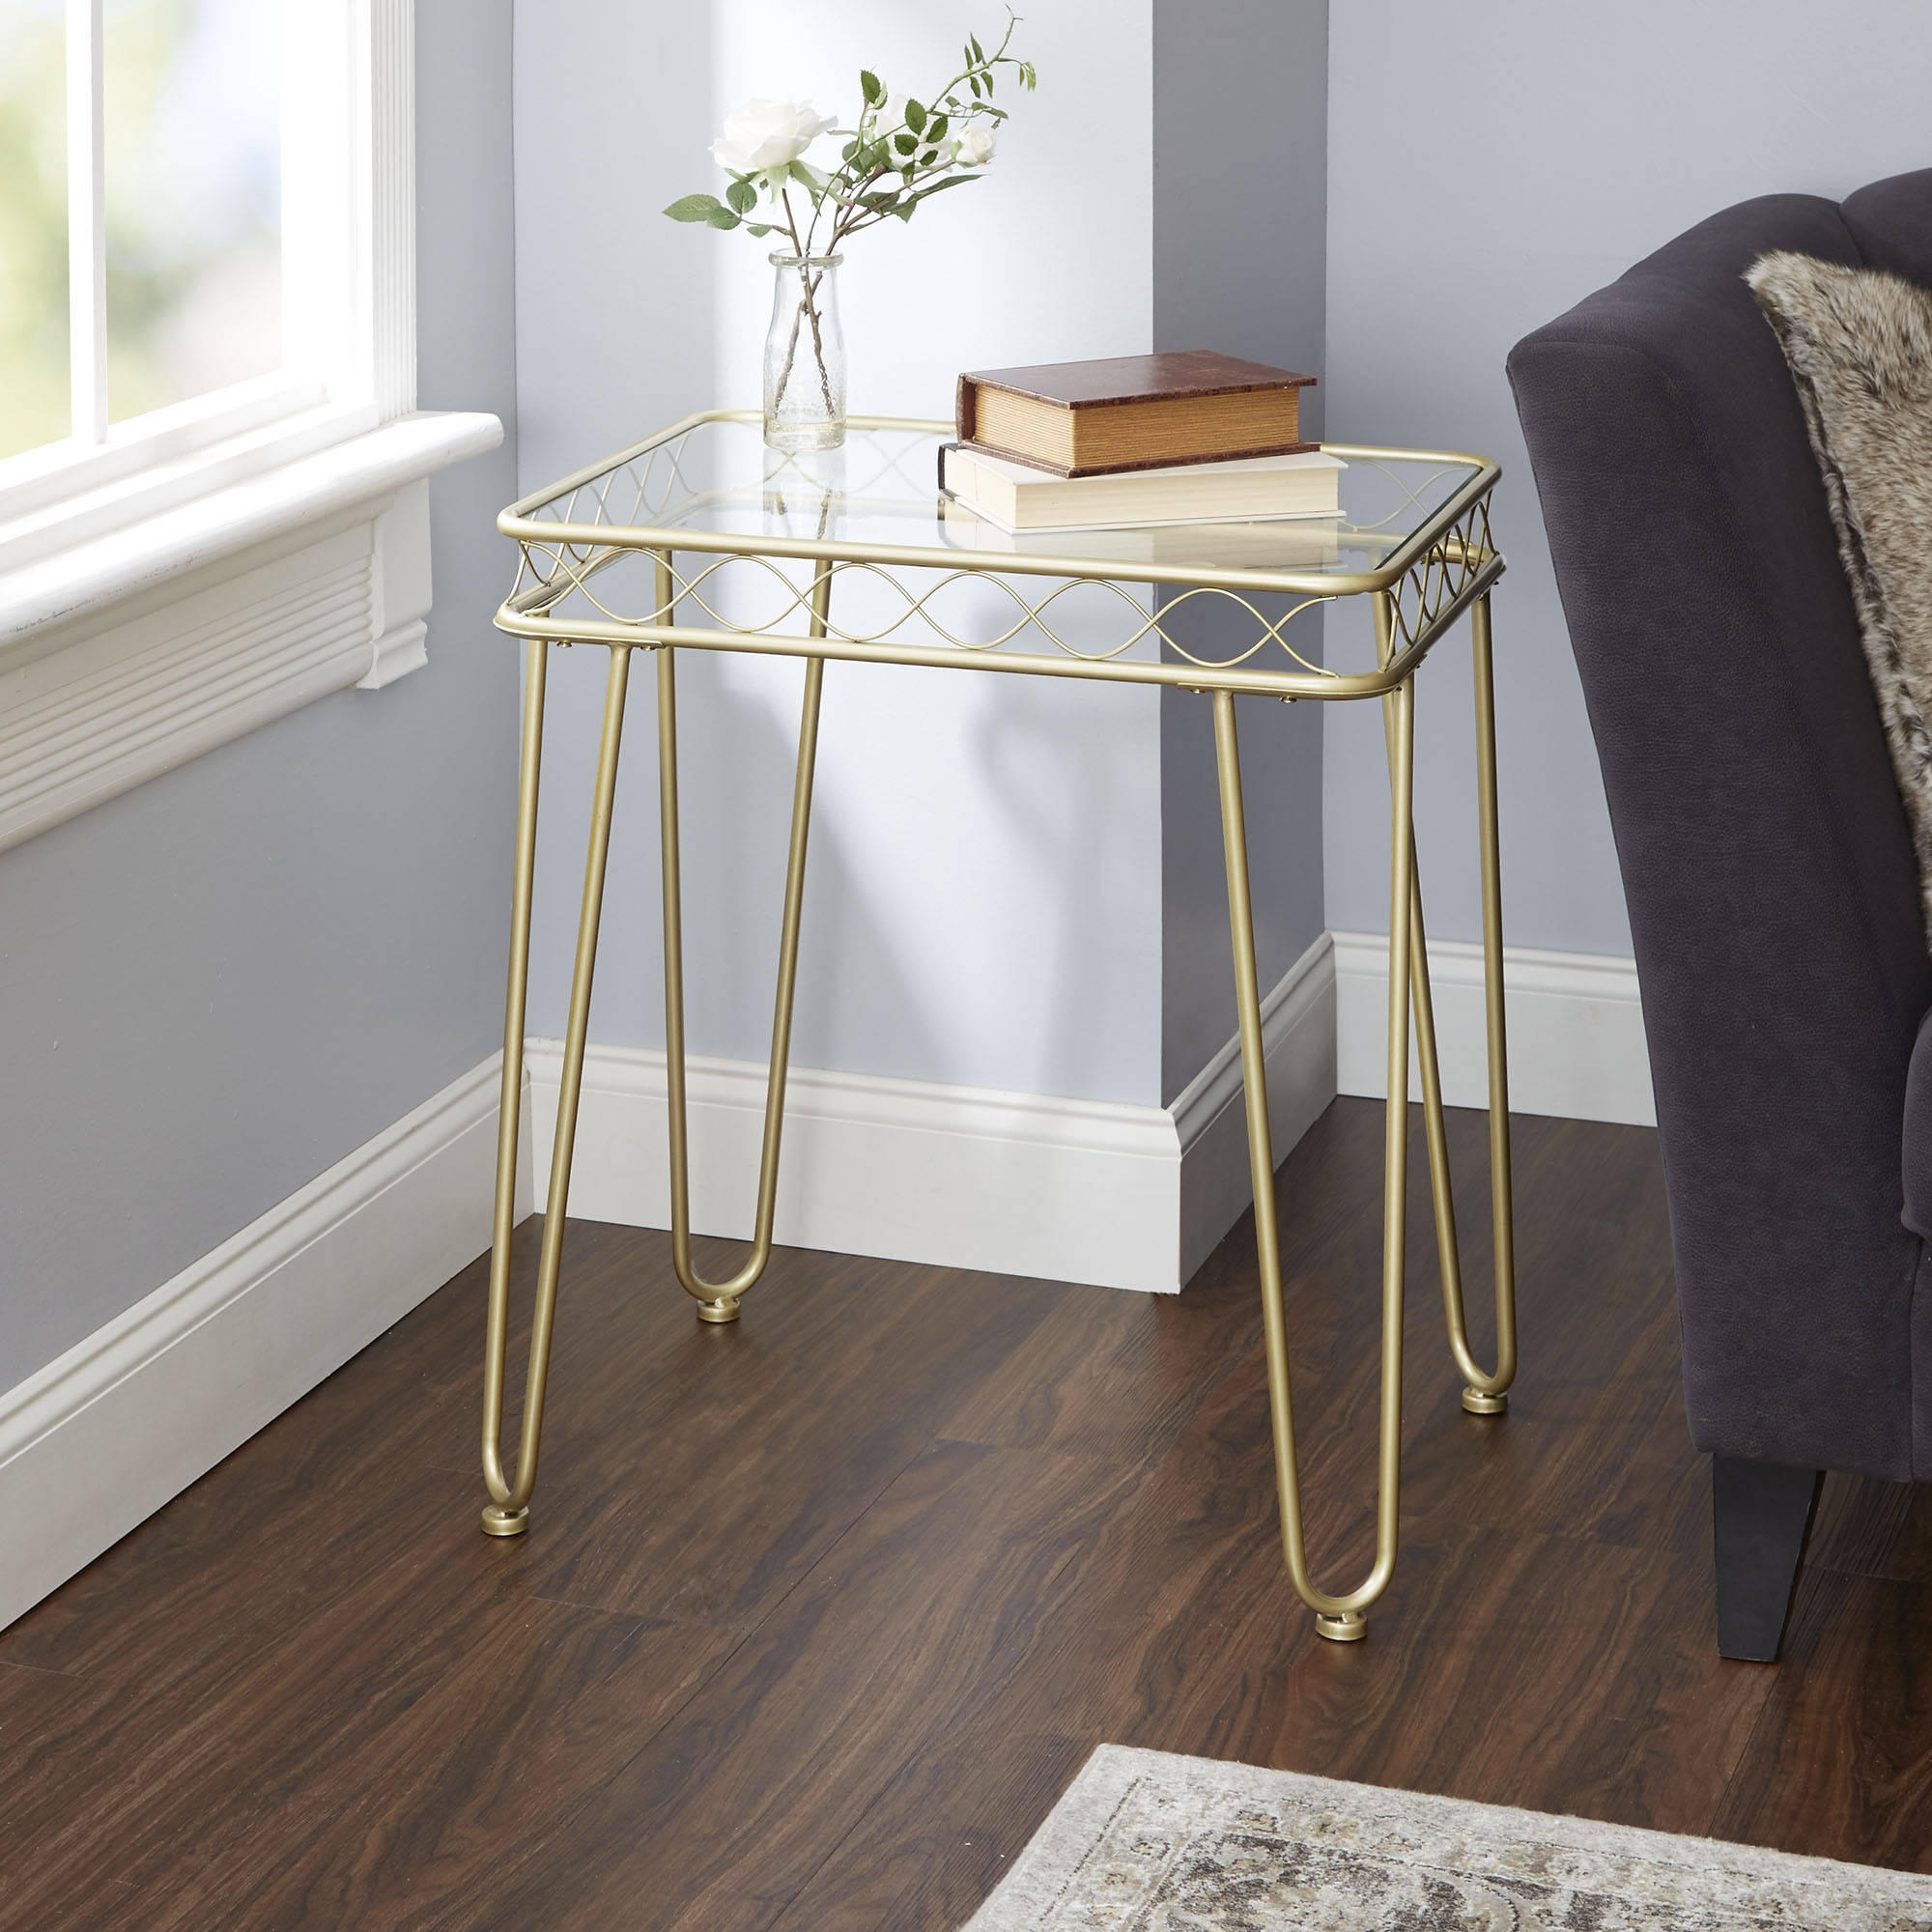 better homes and gardens metal accent table gold tempered glass top mirabella res tuscan furniture tall lamps garden rustic chic end tables white modern side shower curtains